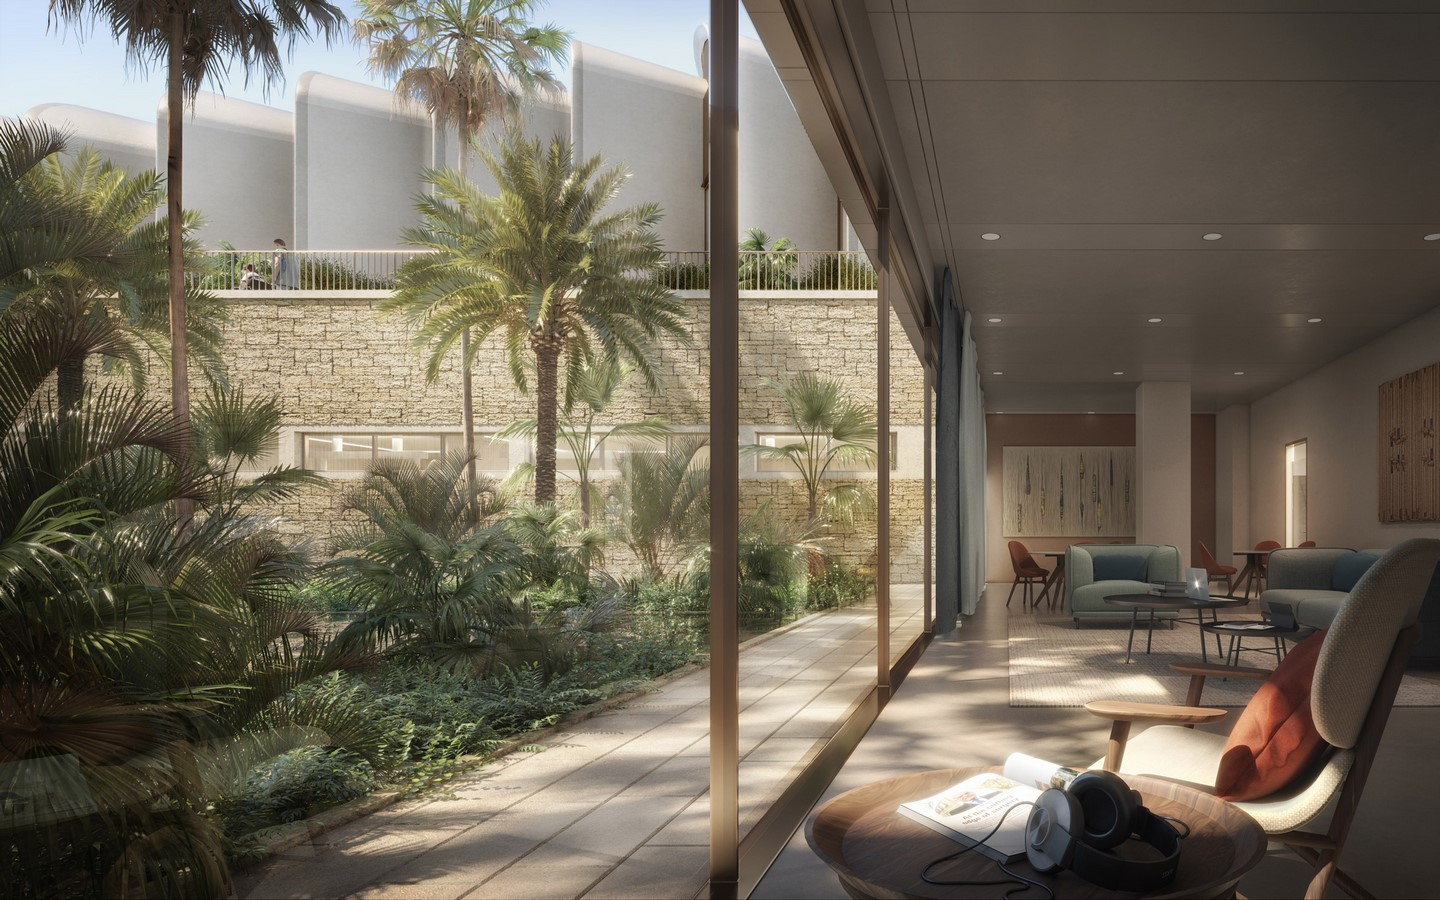 Construction begins on Cairo's New Global Heart Hospital designed by Foster + Partners - Sheet5